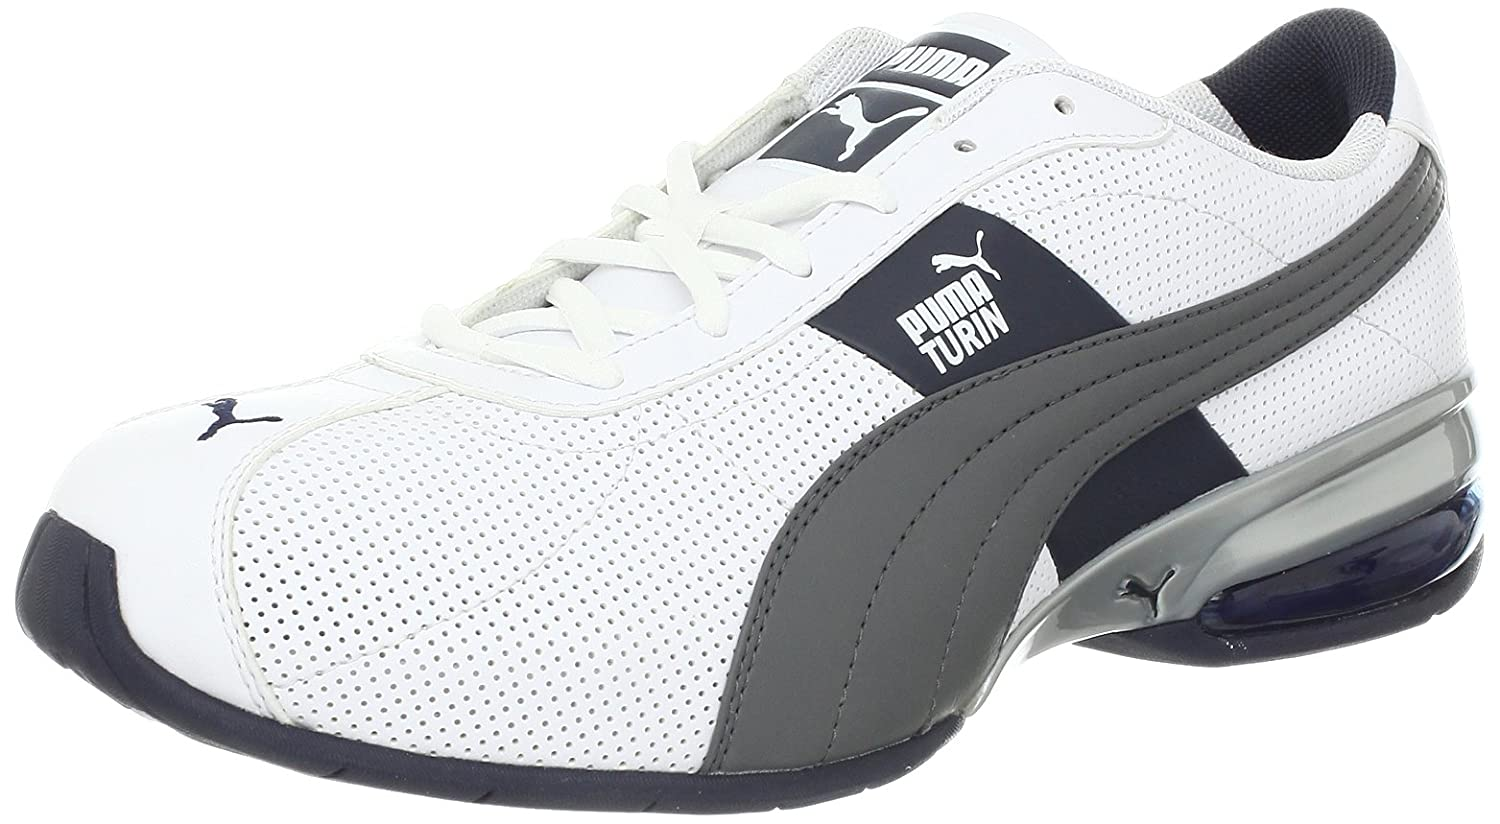 5a9ab79e486a Puma Men s Cell Turin Cross-Training Shoe